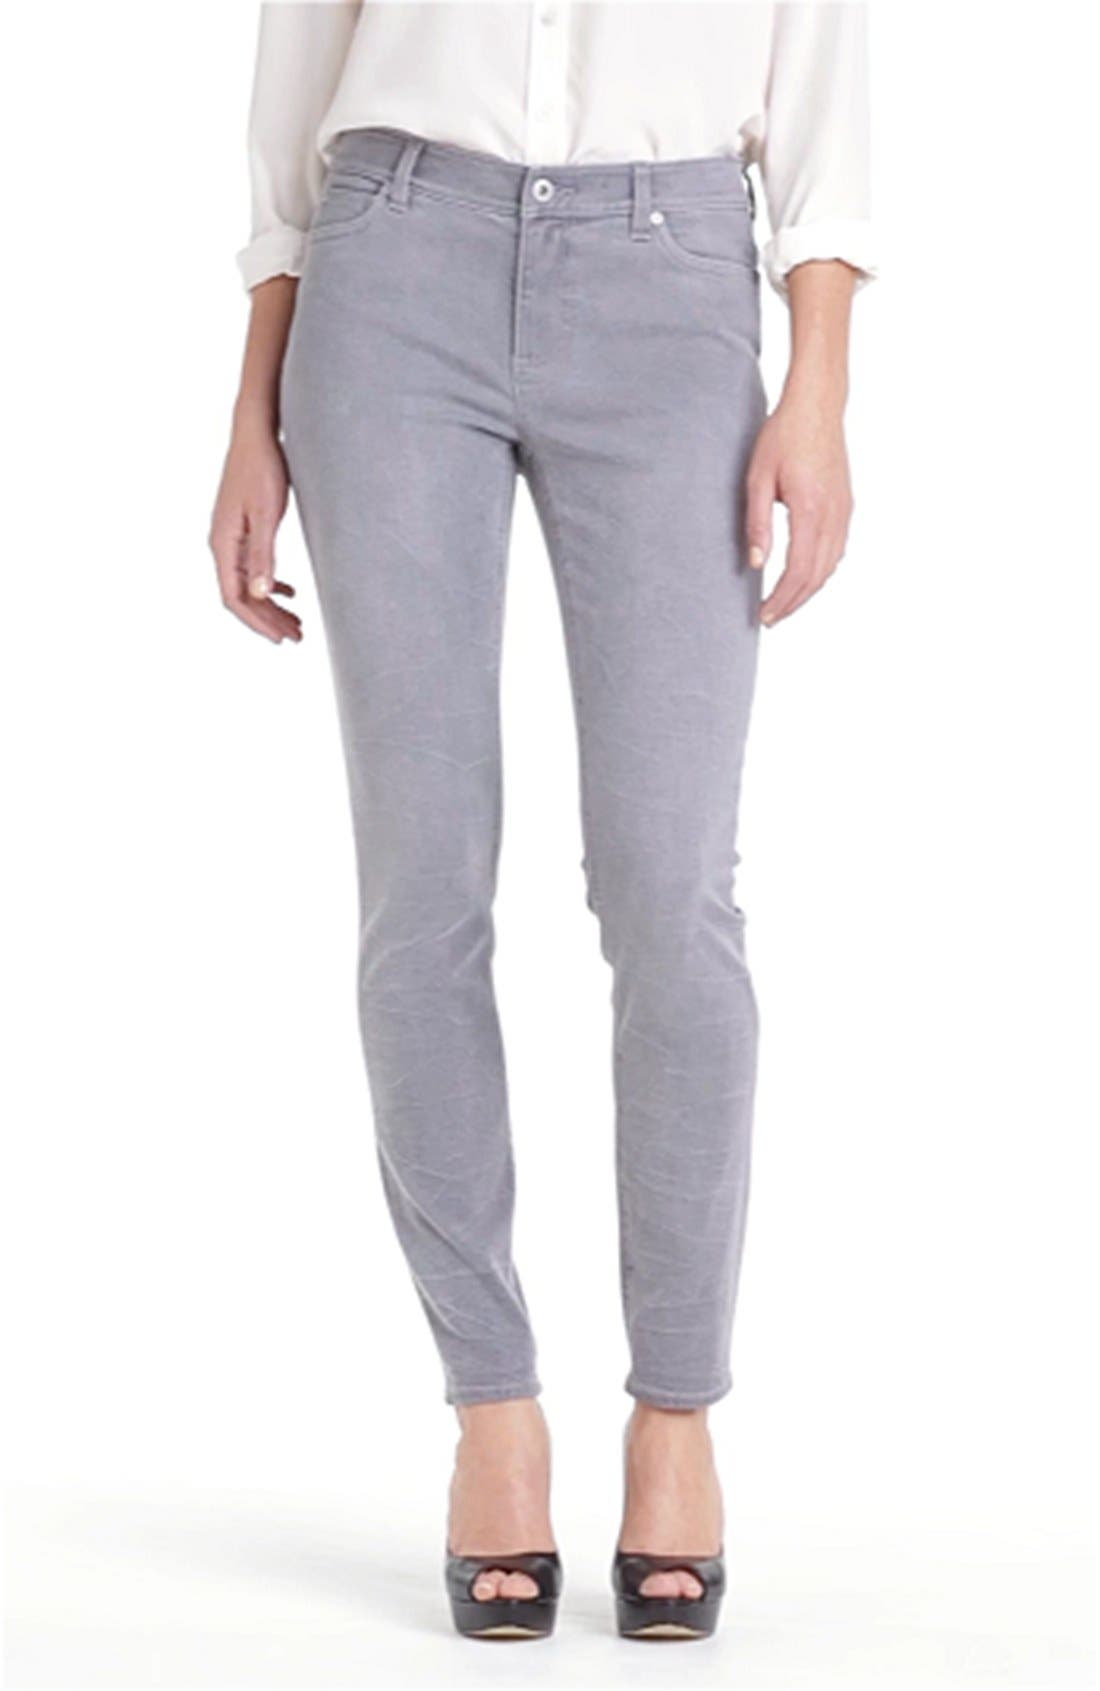 Sand Washed Skinny Jeans,                             Alternate thumbnail 6, color,                             085